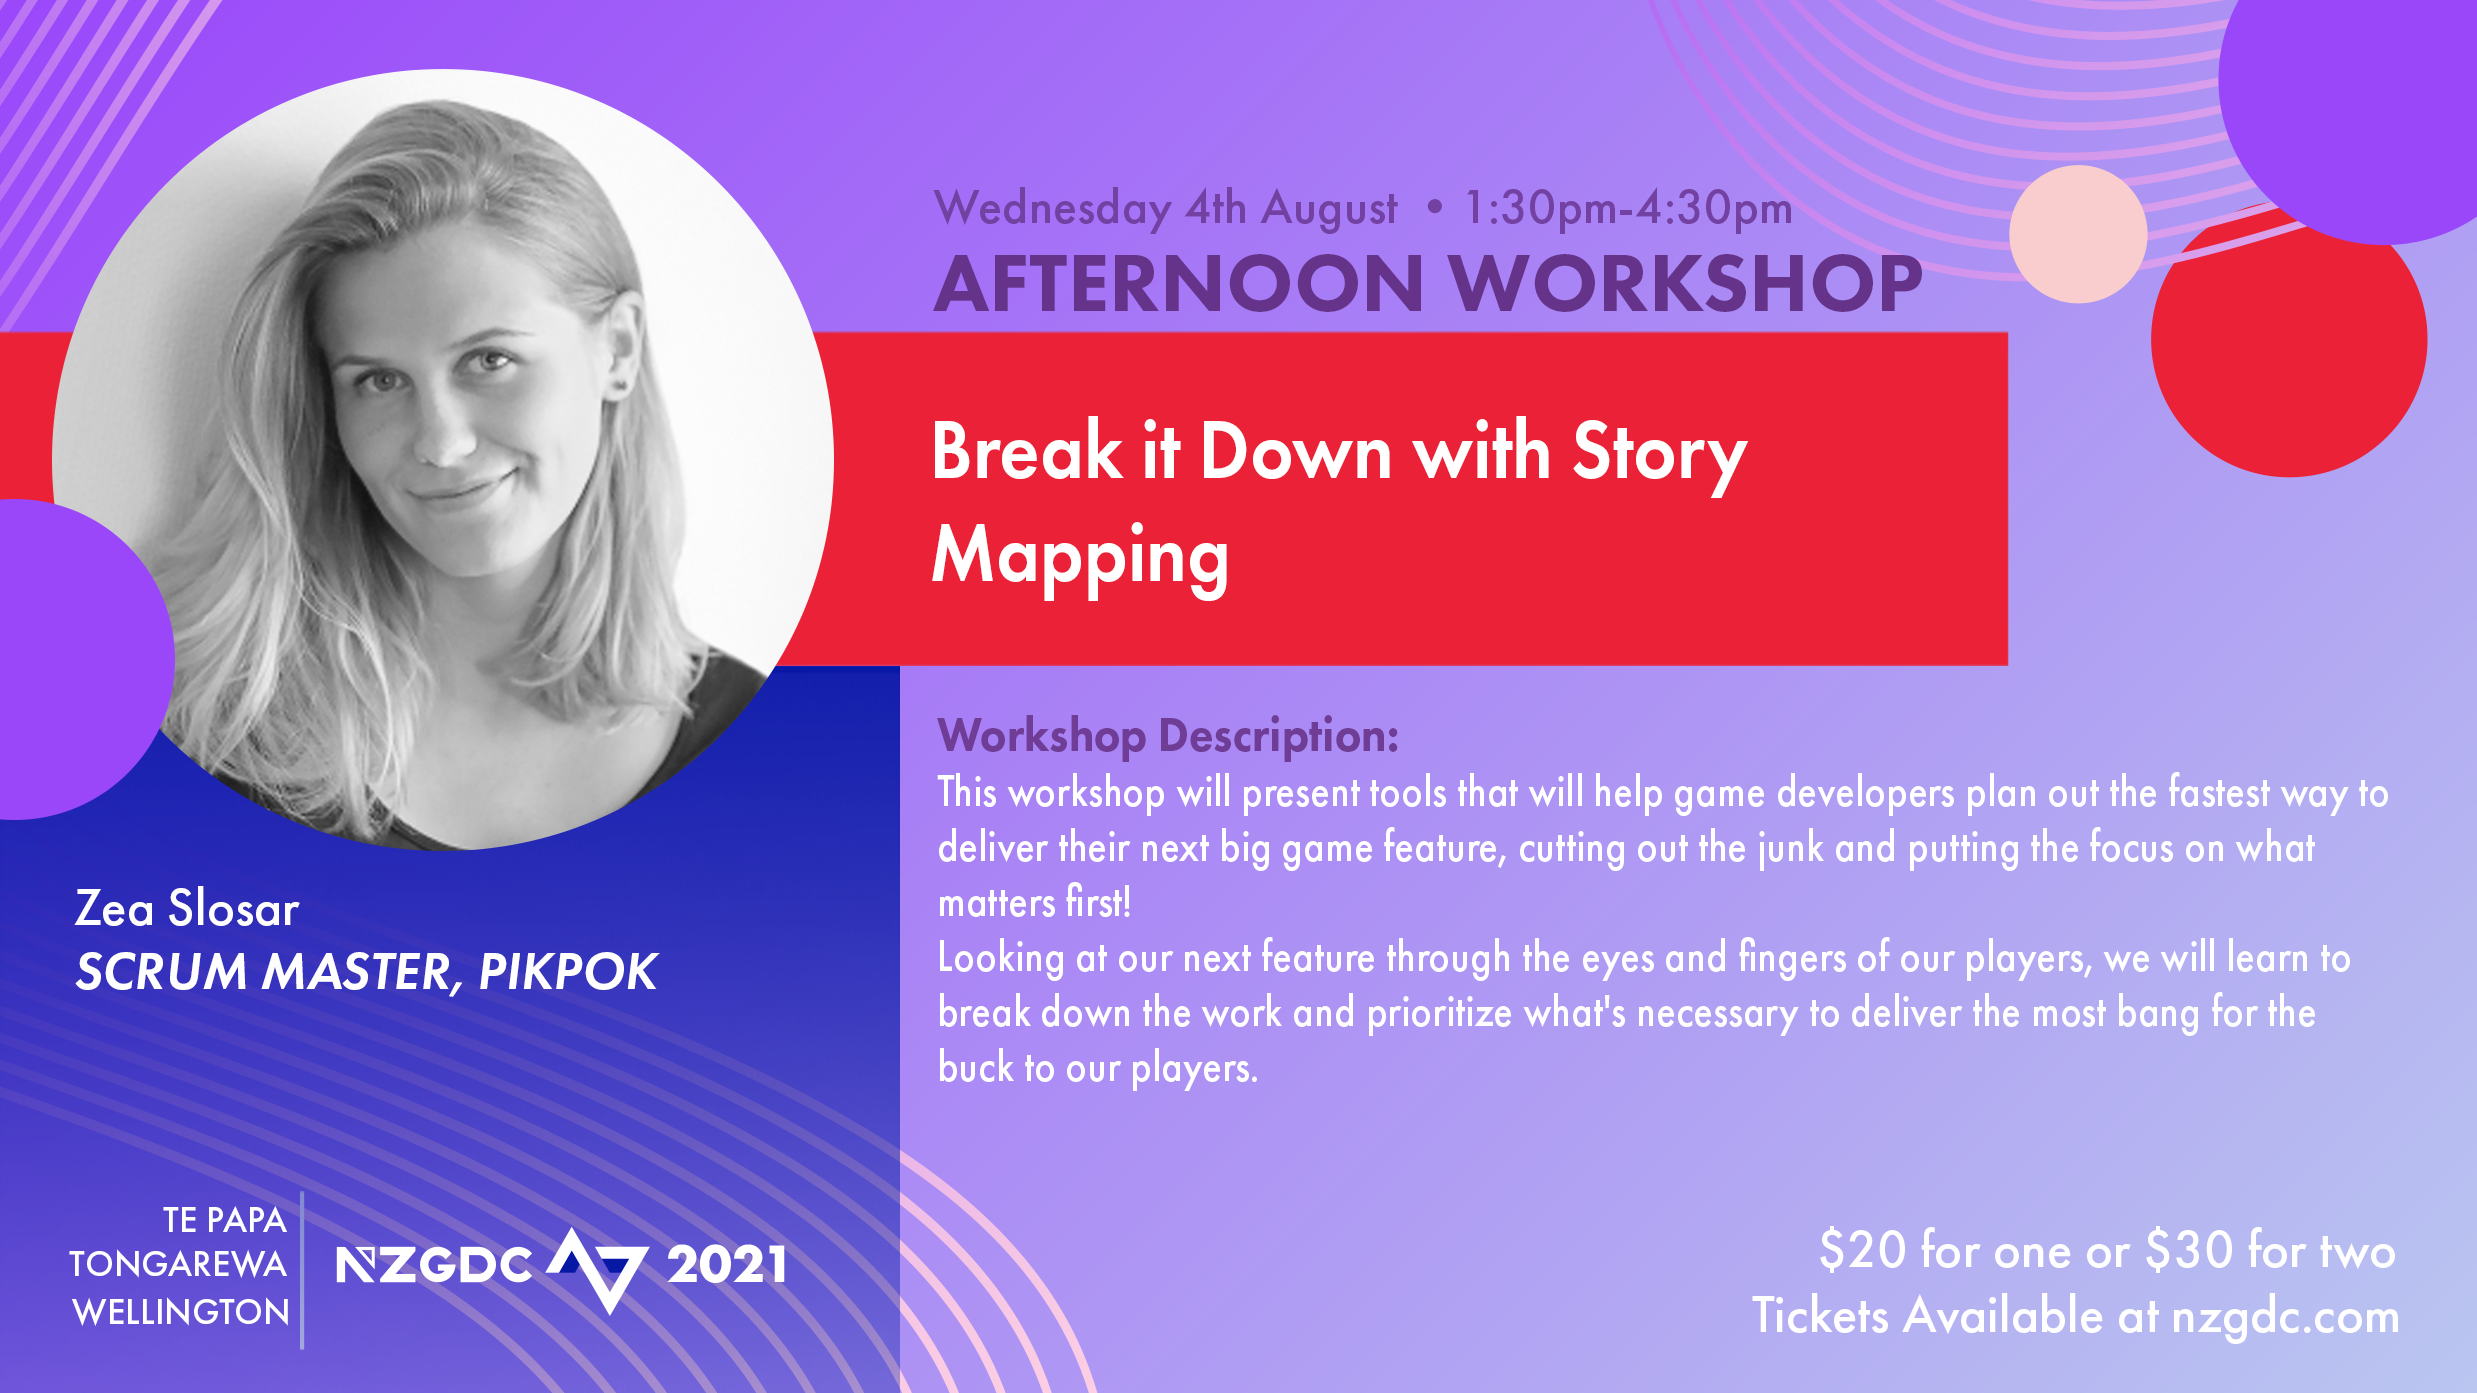 Break it down with Story Mapping